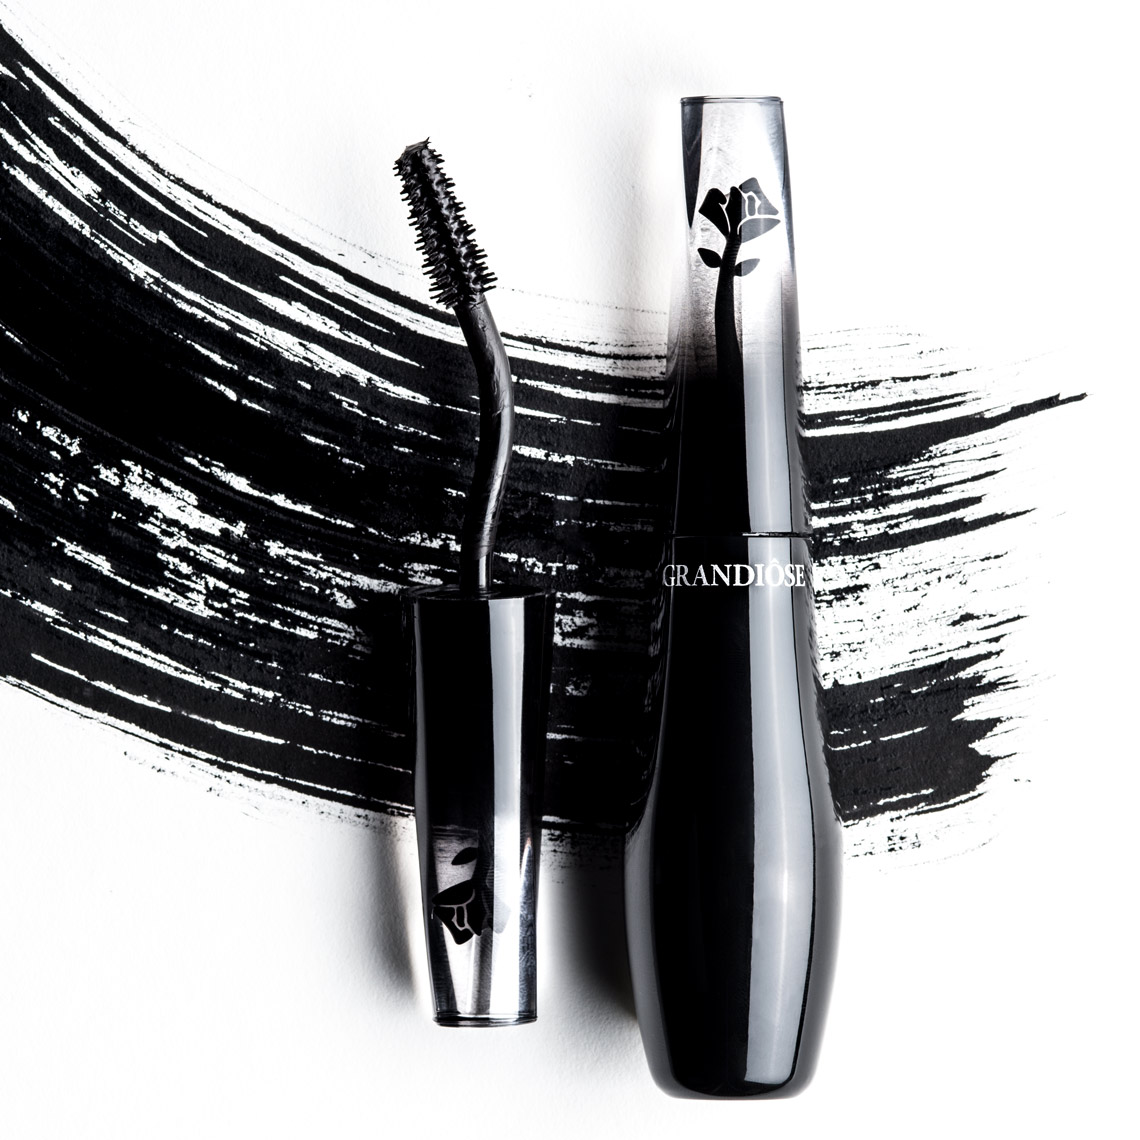 Commercial-Product-Lancome-Grandiose-Mascara